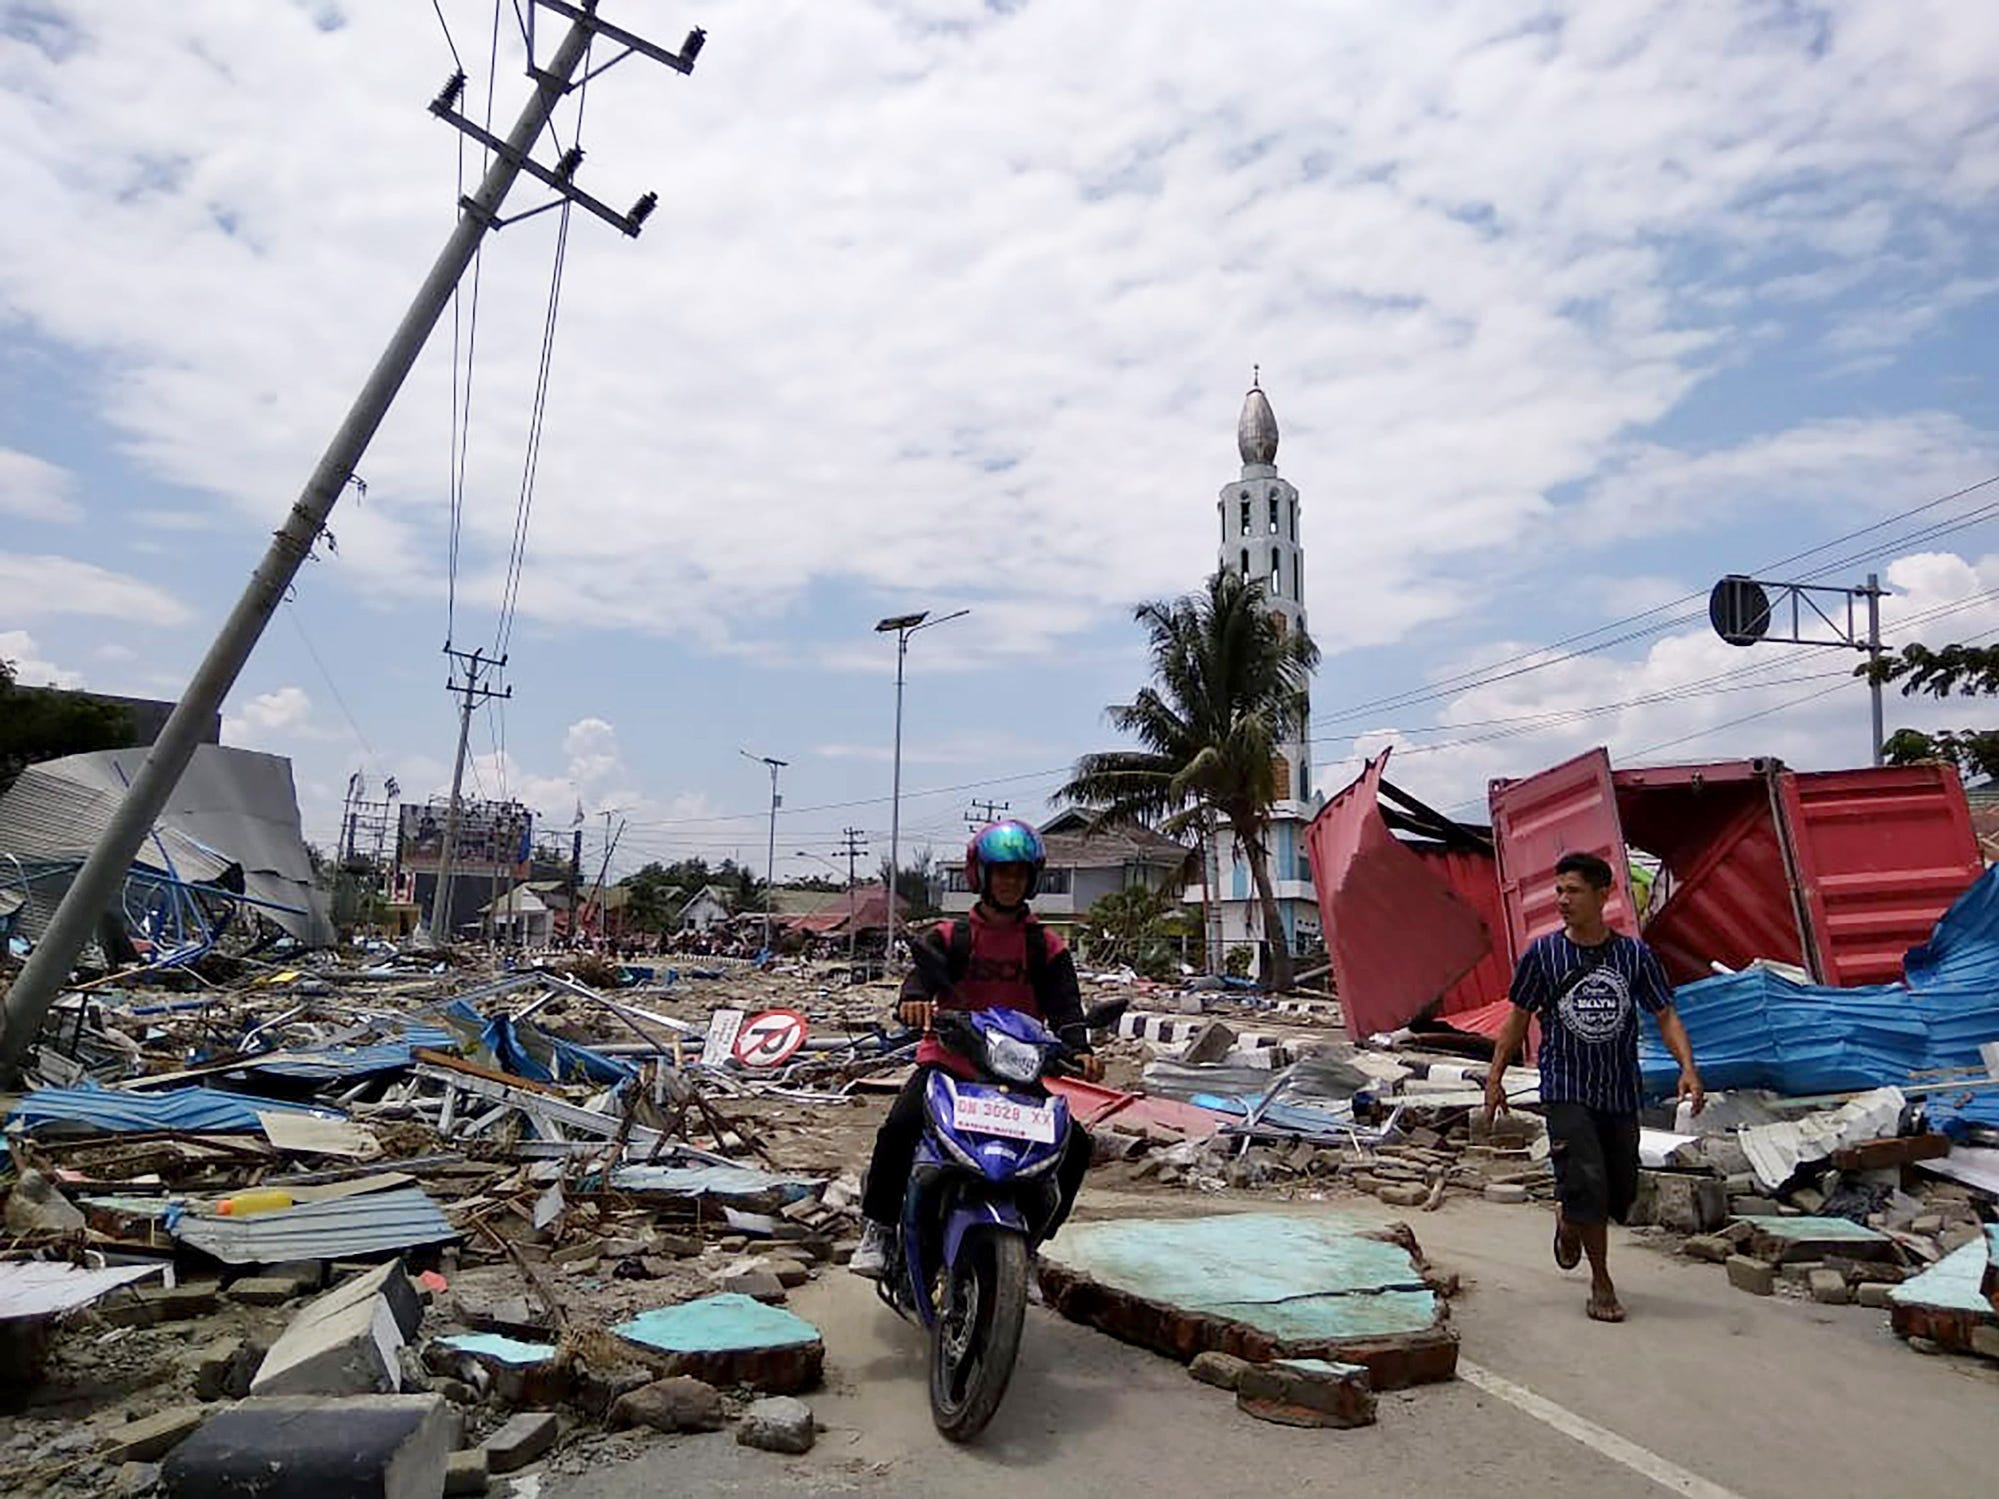 Residents make their way along a street full of debris after an earthquake and tsunami hit Palu, on Sulawesi island on Saturday.